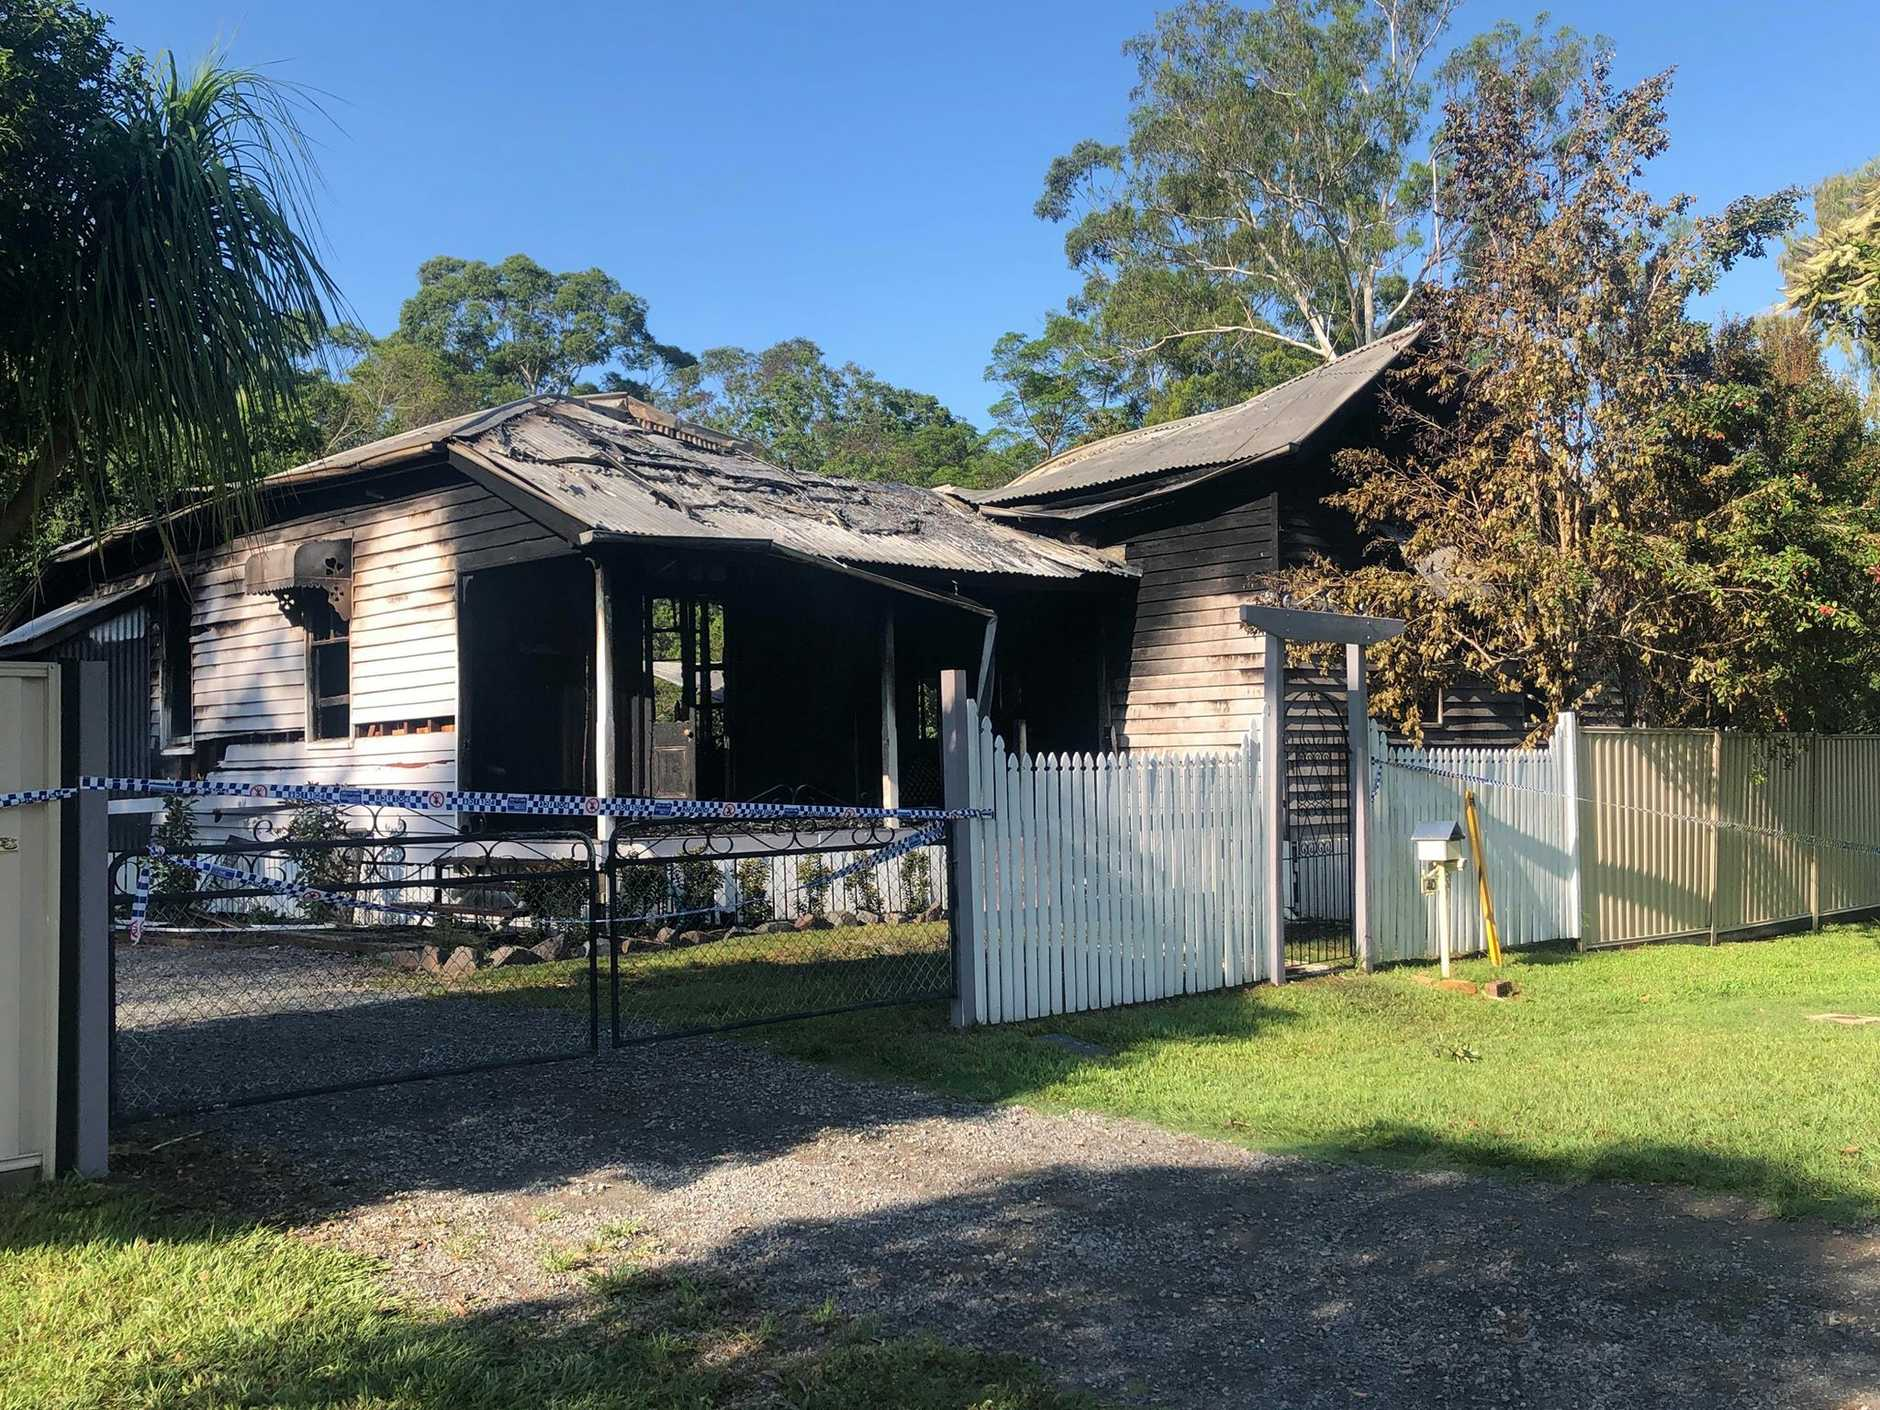 A home was destroyed by flames overnight at Landsborough.